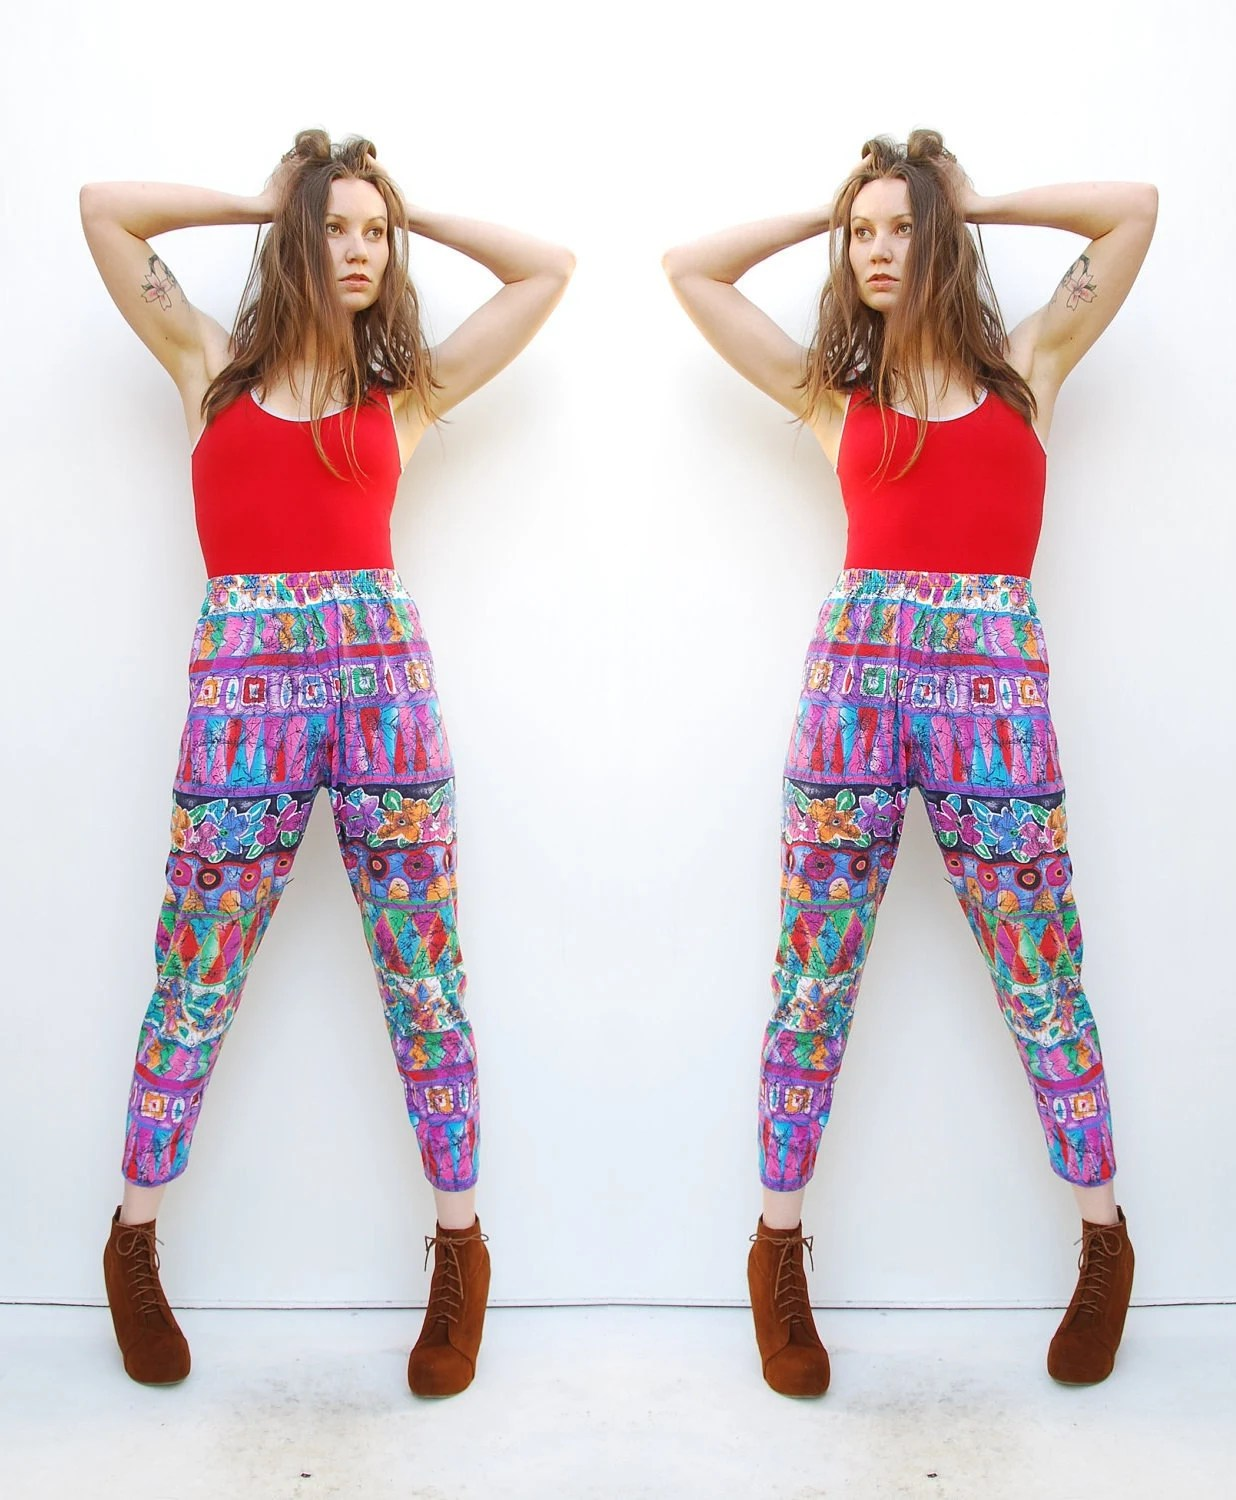 80s High Waist Pants - Knit Pants - Geometric Print - Floral Print - Hipster Pants - High Waist Trousers - Tapered Pants - 4 6 8 S M